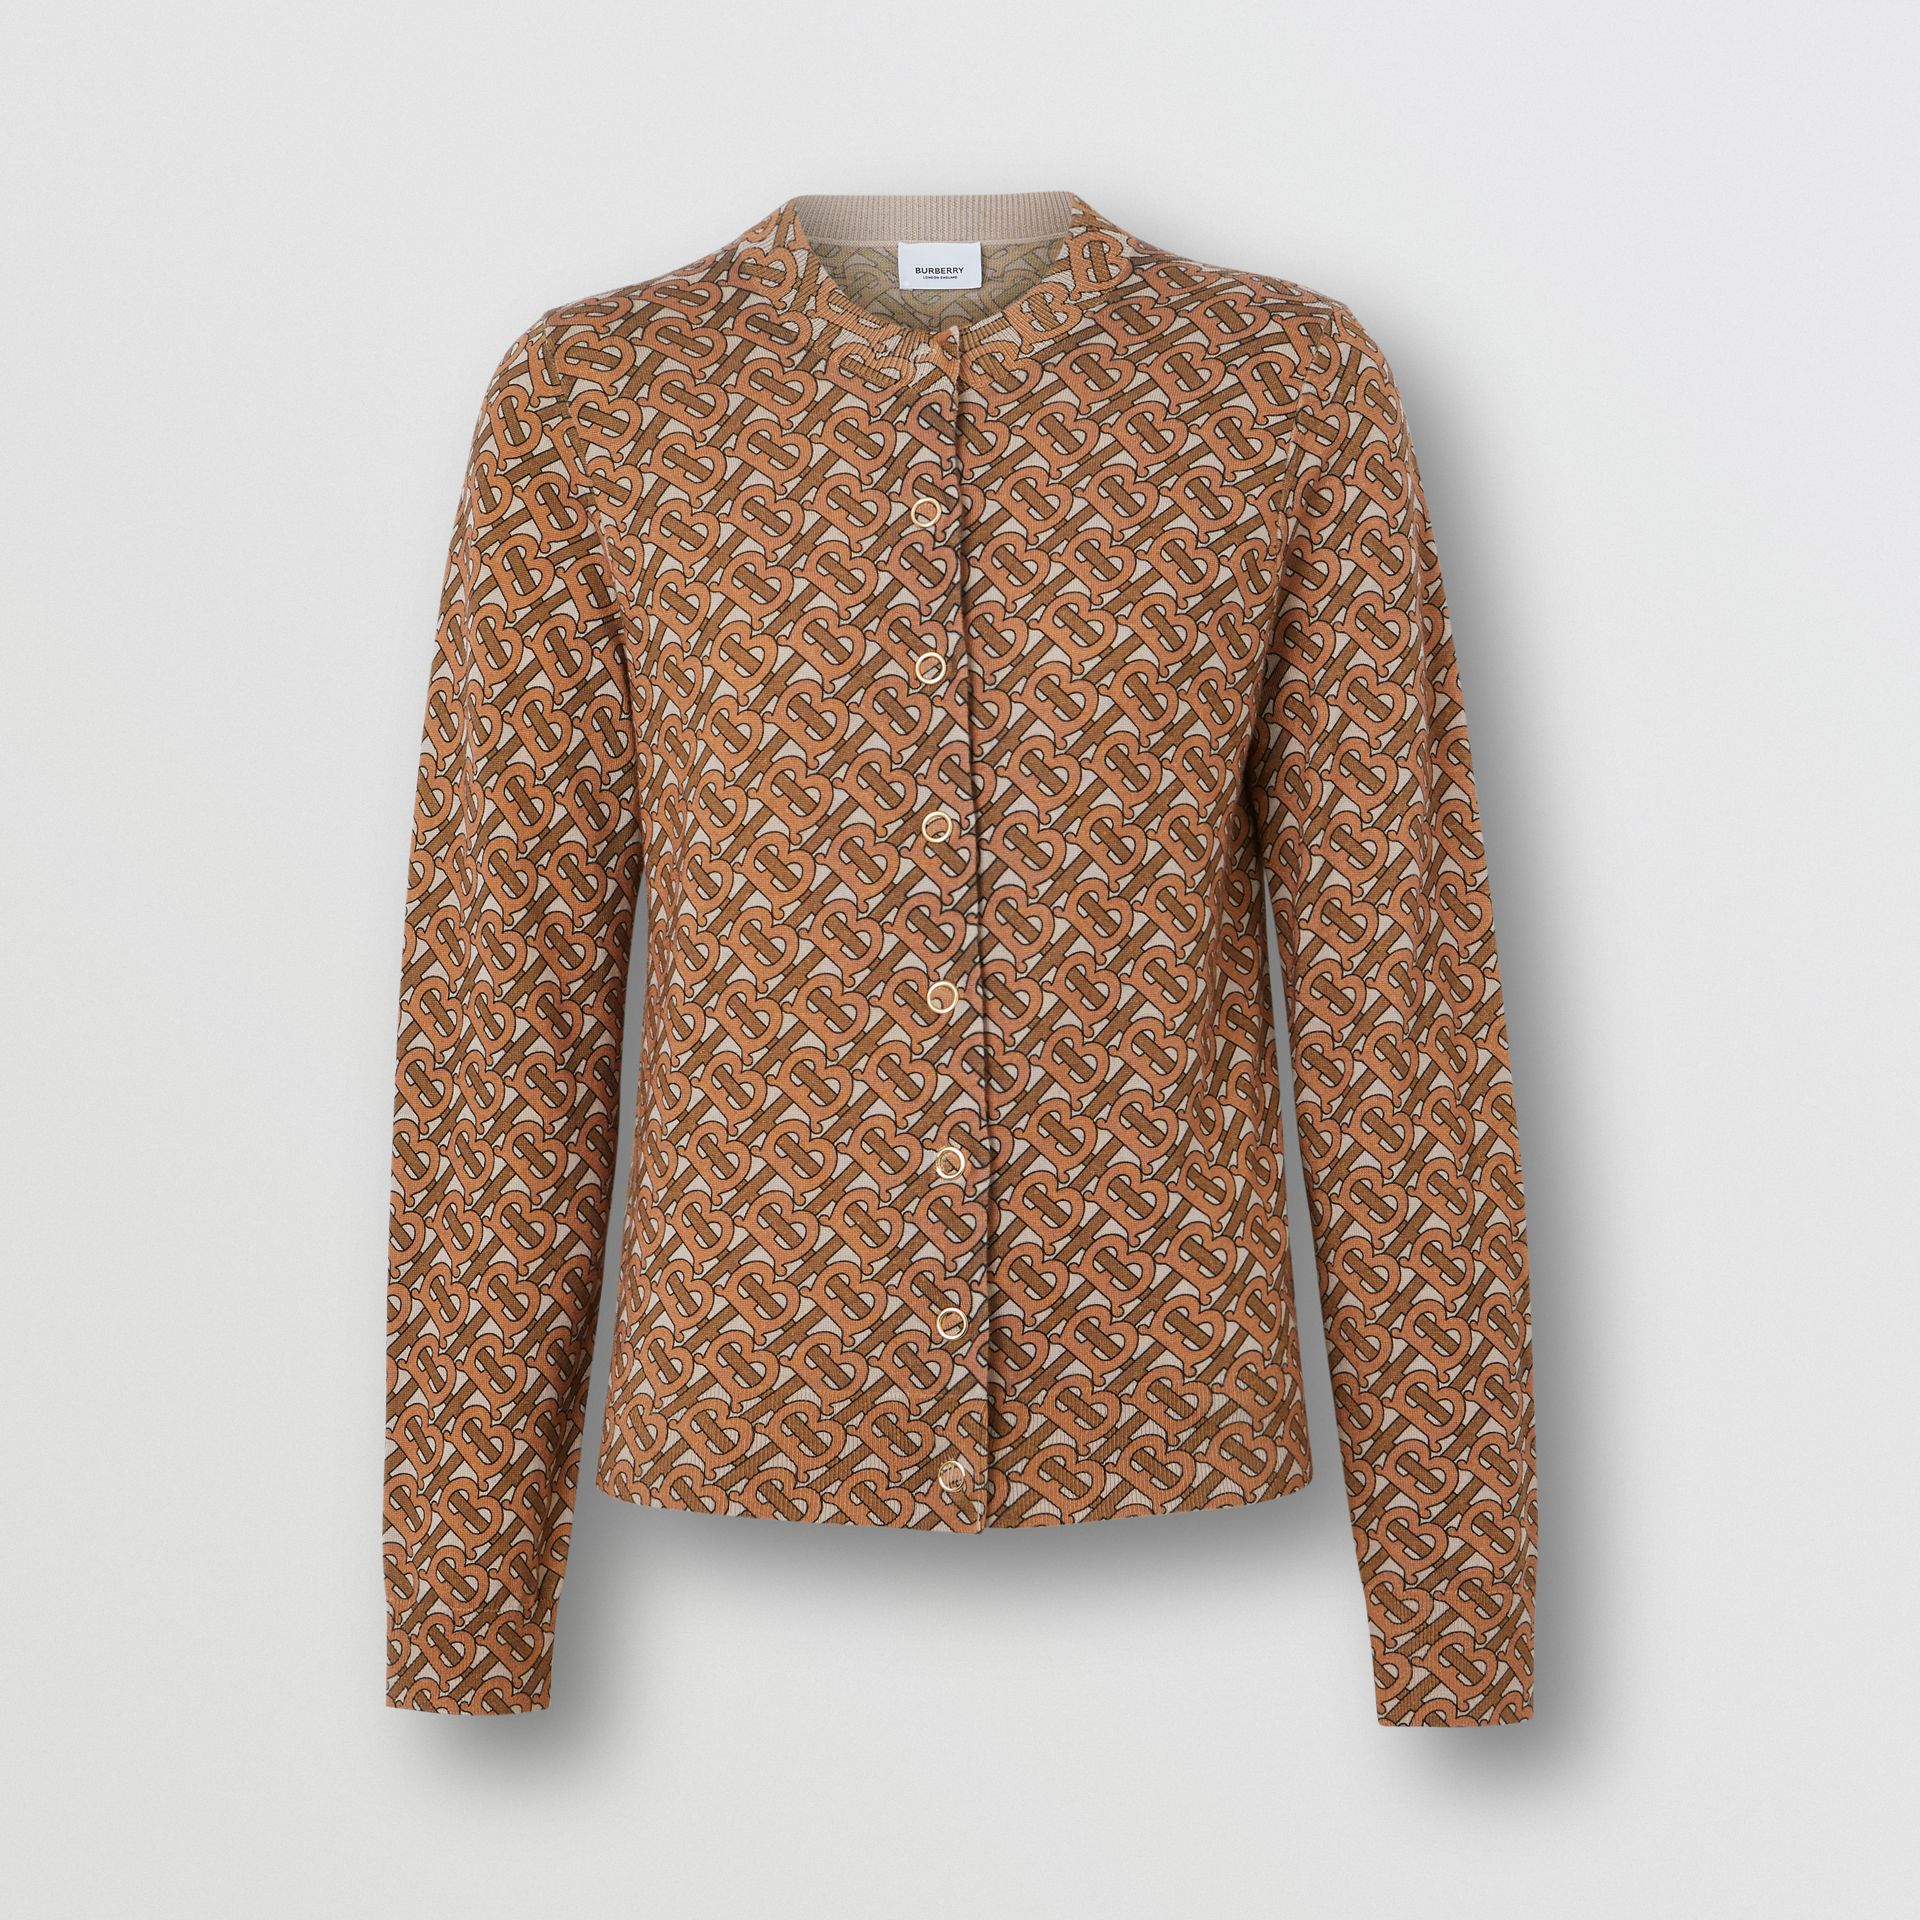 Monogram Print Merino Wool Cardigan in Beige - Women | Burberry Canada - gallery image 3